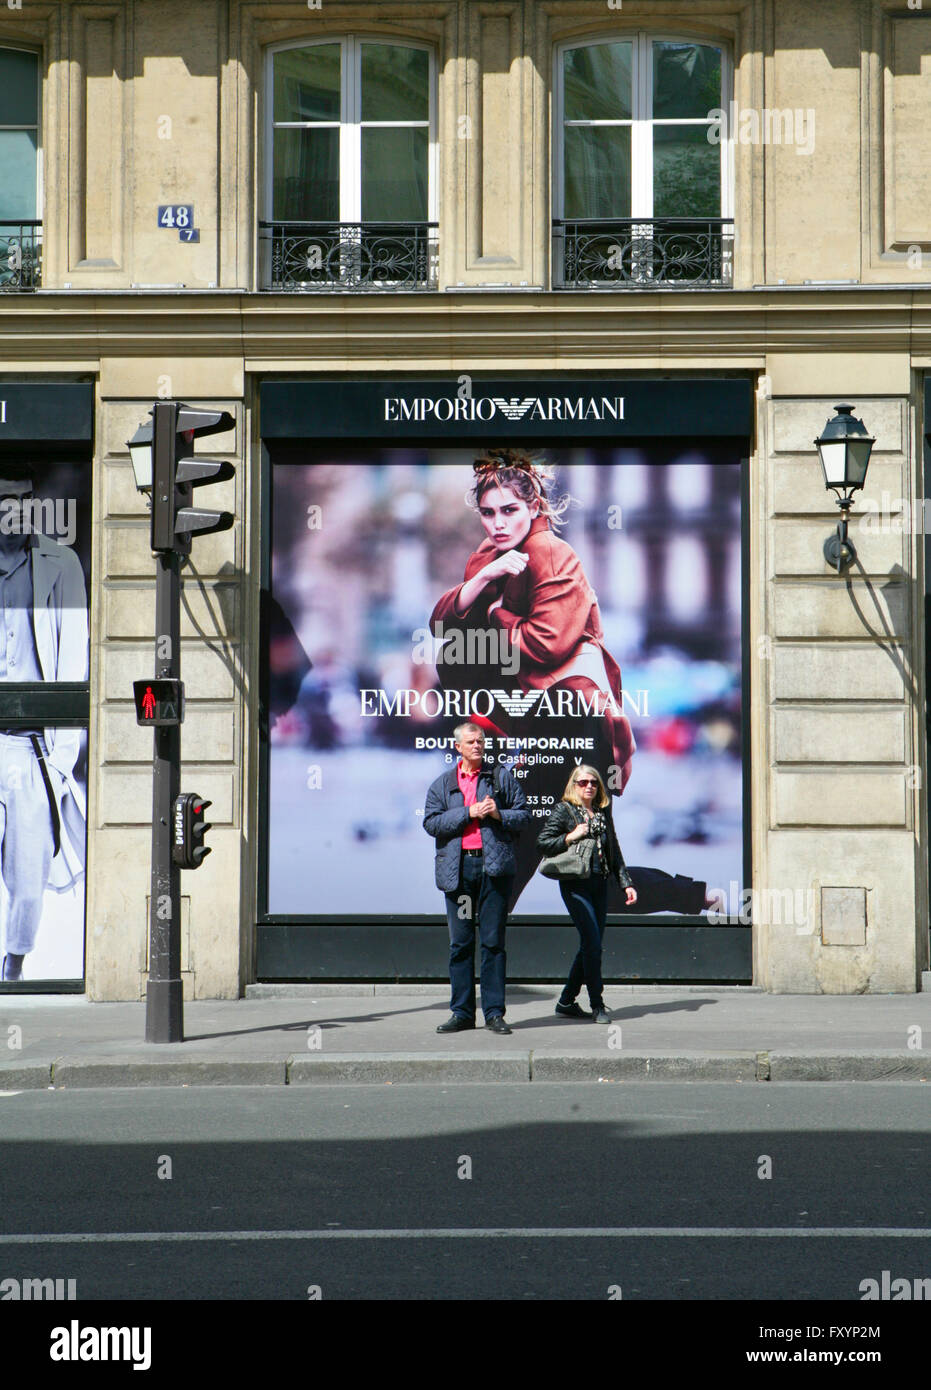 Two people standing in front of the Emporio Armani shop, in Paris,France - Stock Image